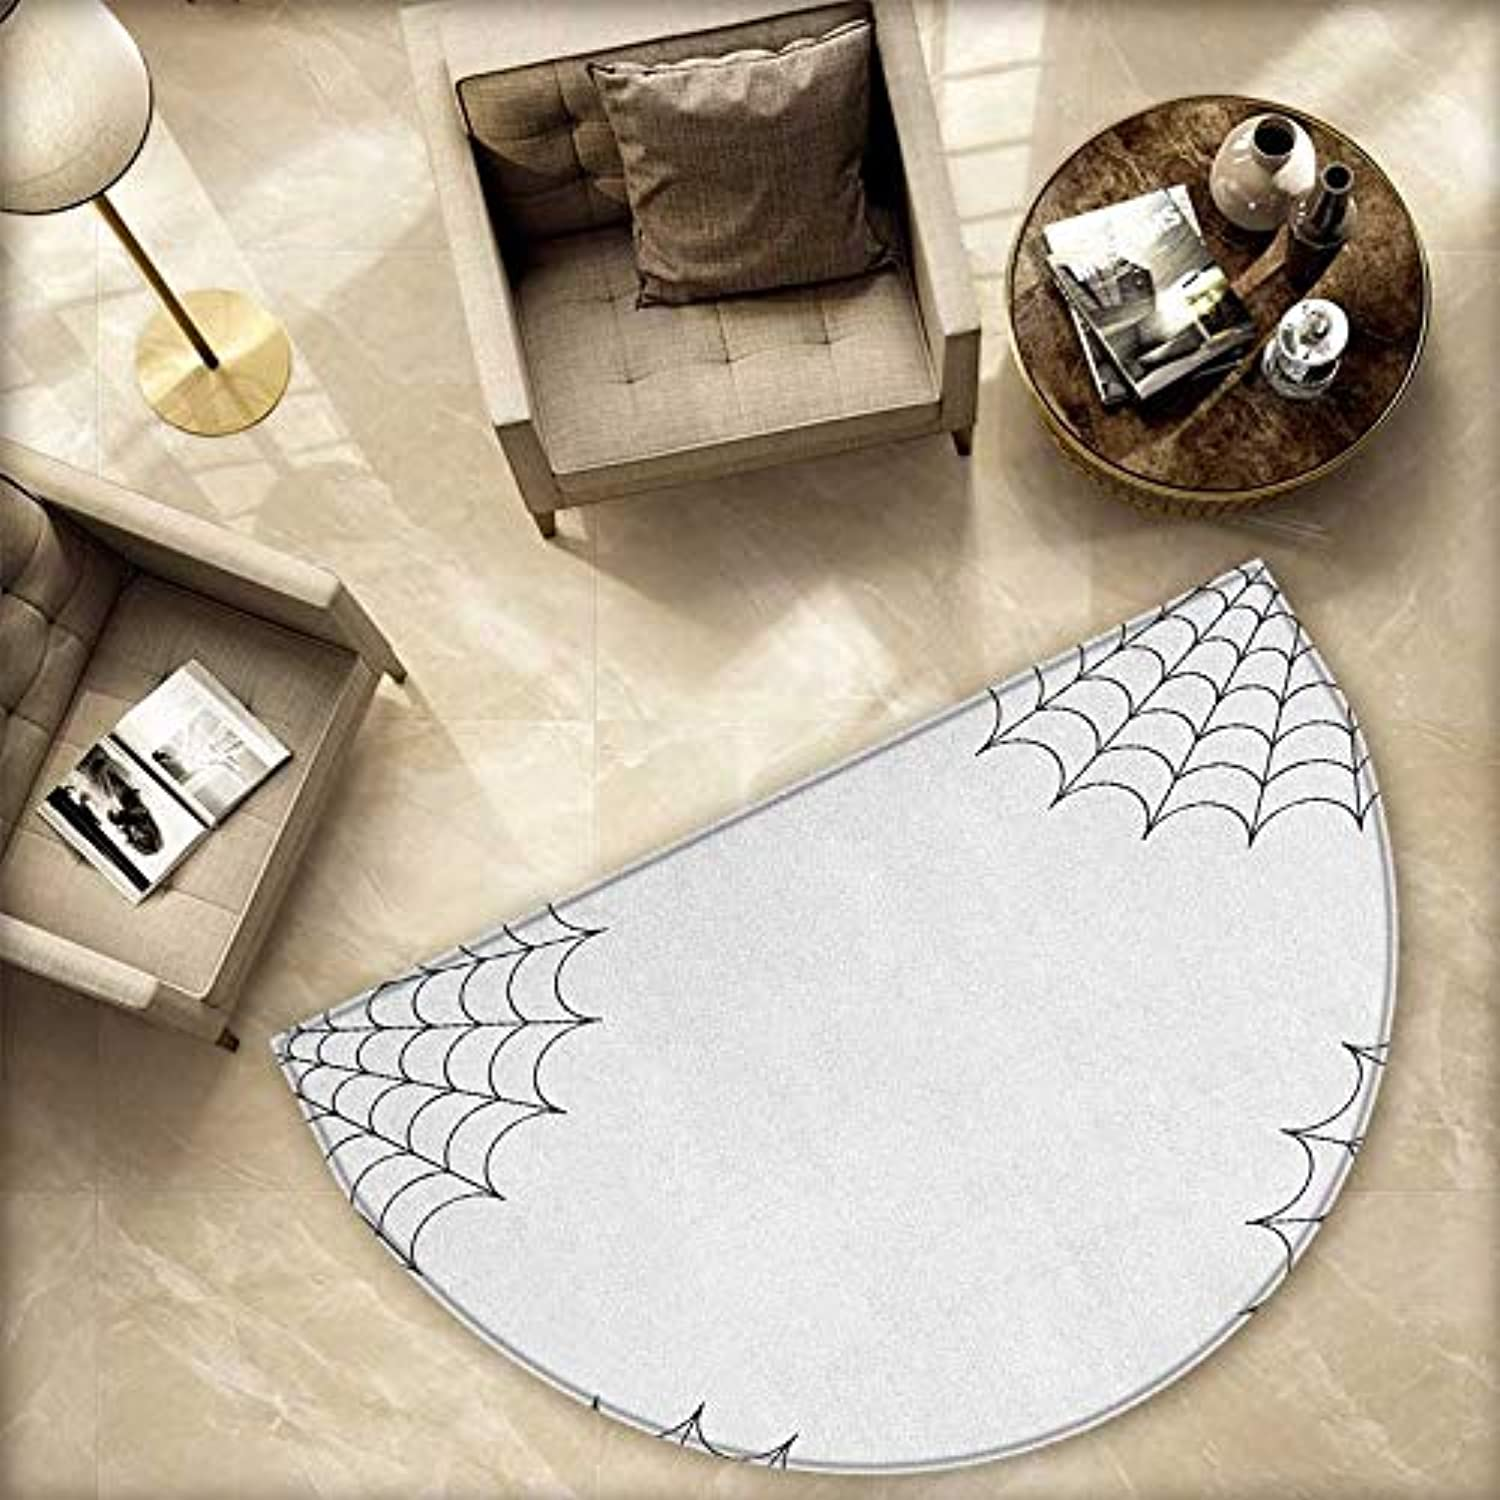 Spider Web Semicircle Doormat Classical Insect Thread on Corners Simple Minimalist Design Venomous Toxic Bug Halfmoon doormats H 78.7  xD 118.1  Black White